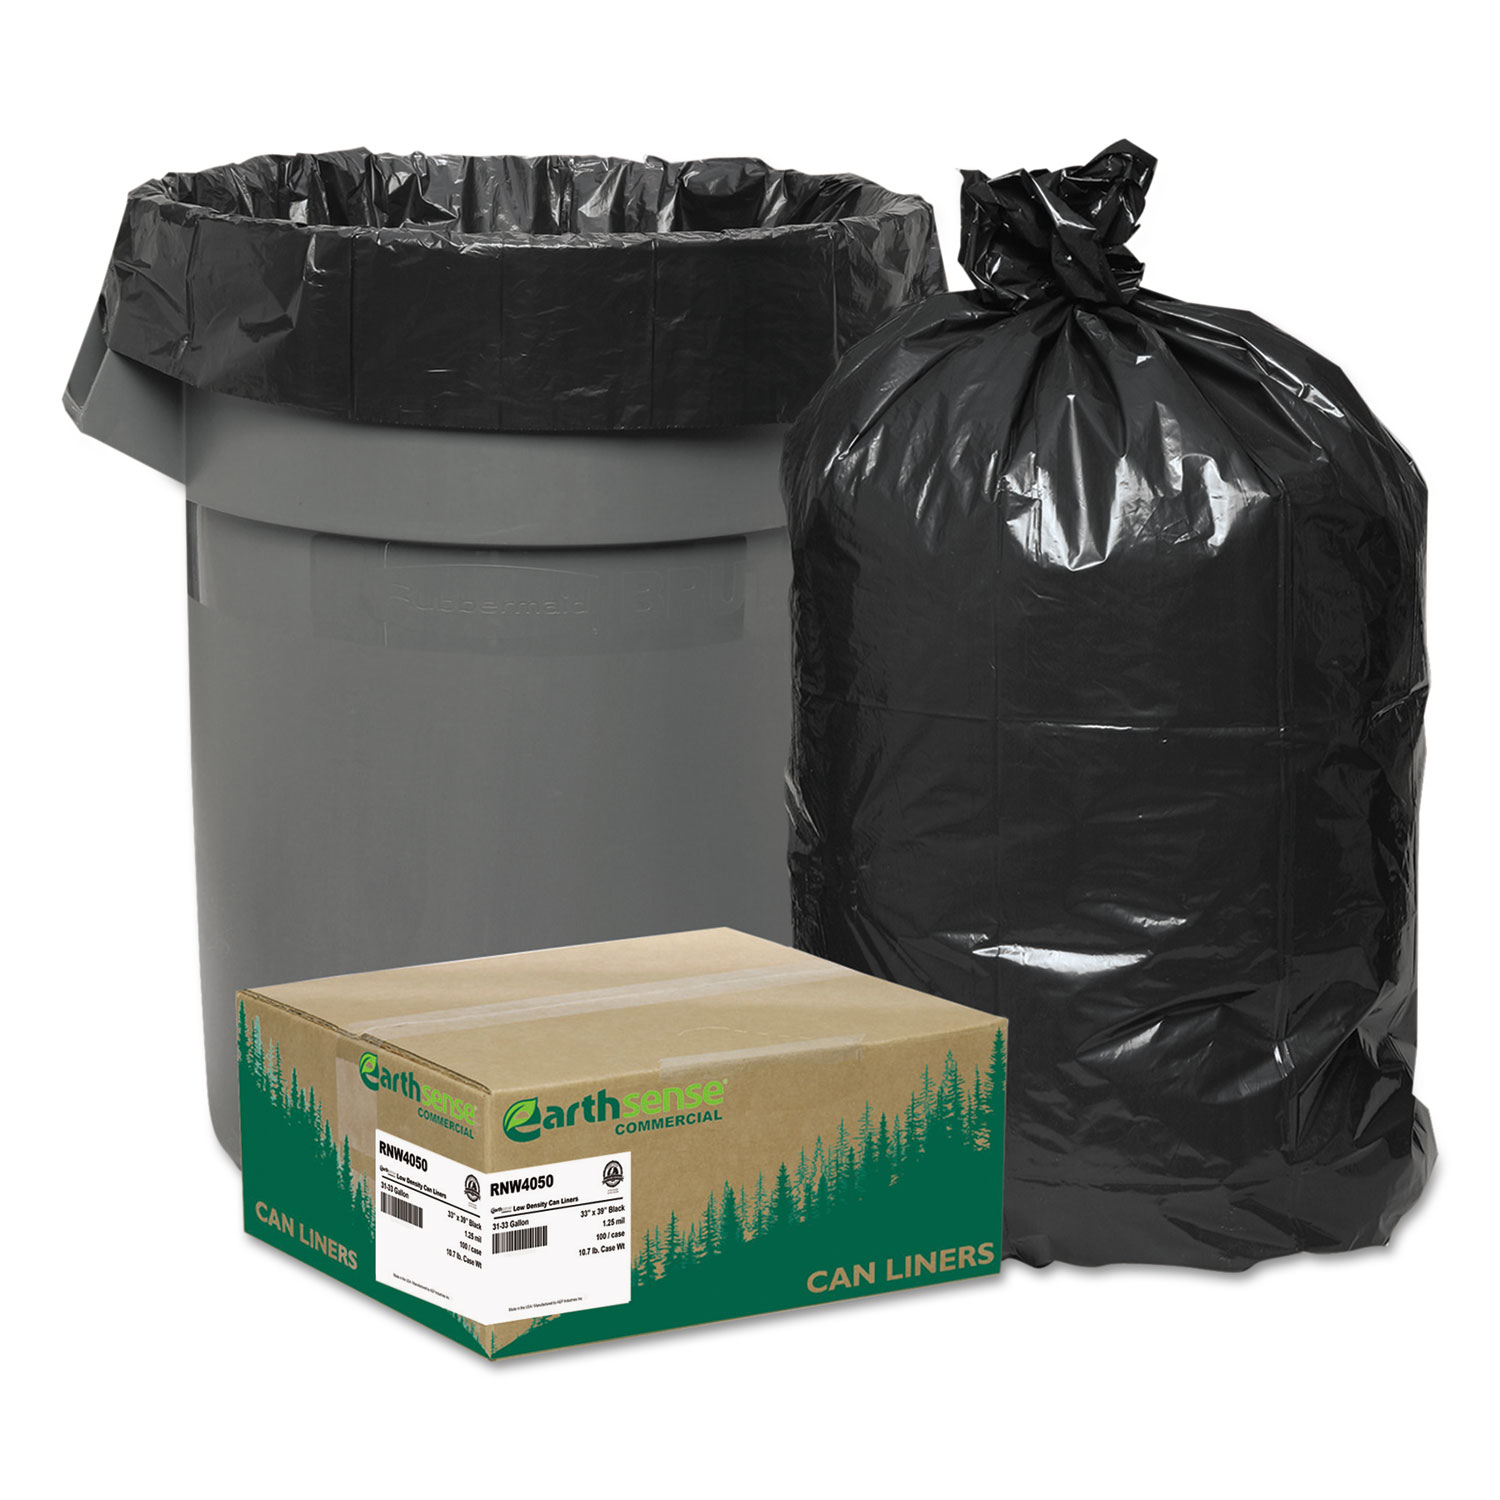 "Linear Low Density Recycled Can Liners, 33 gal, 1.25 mil, 33"" x 39"", Black, 100/Carton"